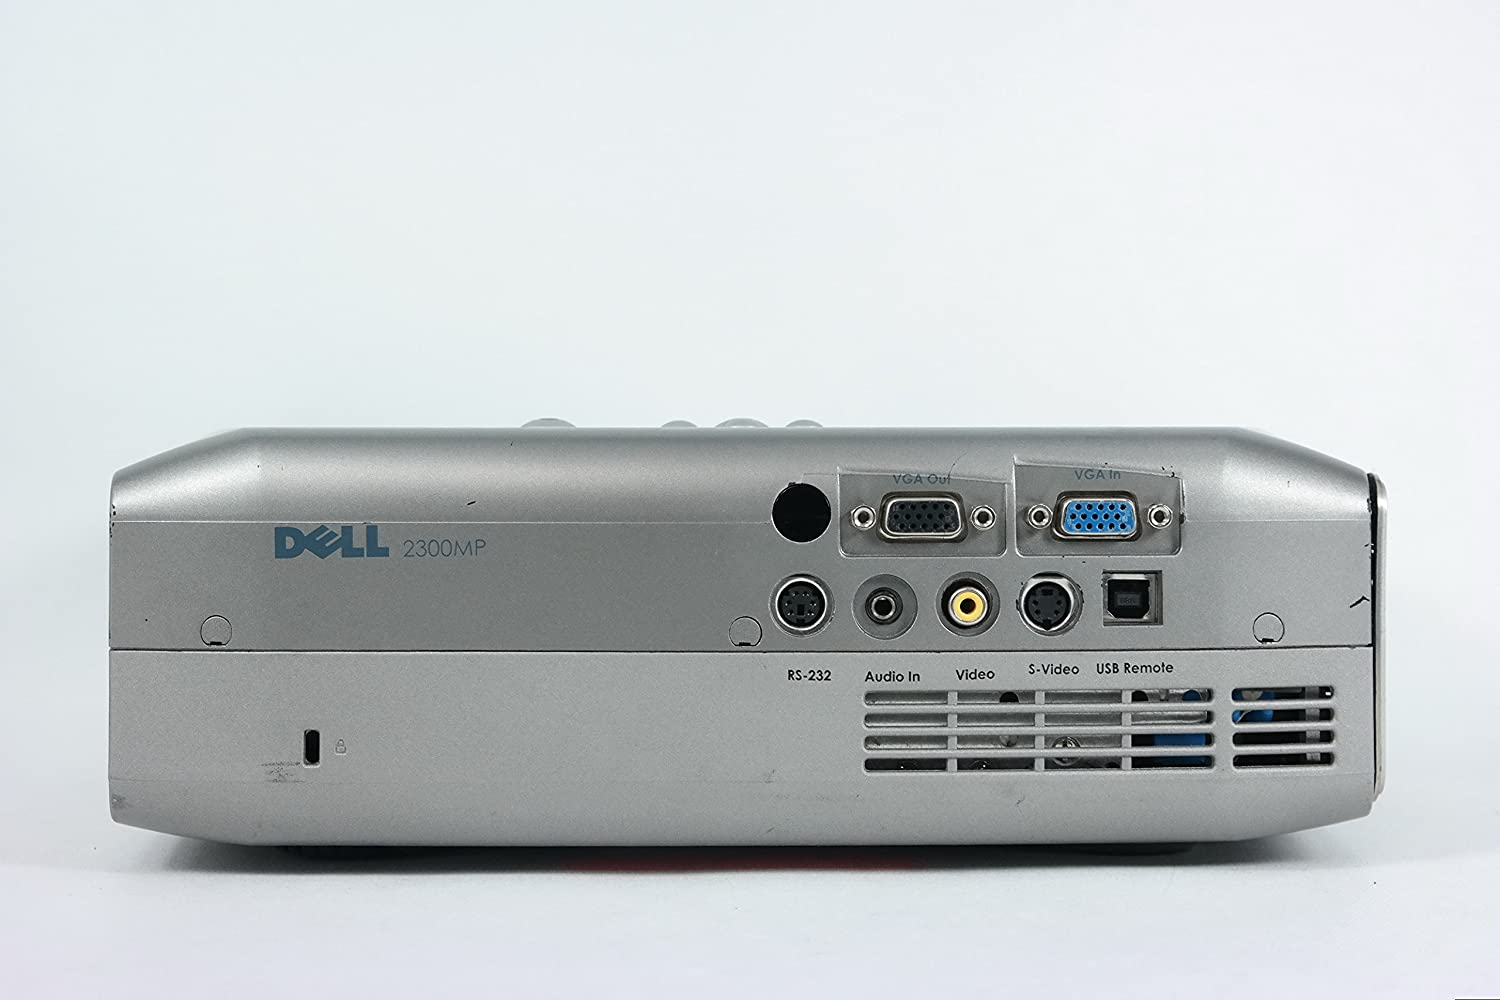 amazon com dell 2300mp projector with 2300 lumens xga resolution rh amazon com Dell 2300MP Repair Dell 2300MP Bulb Replacement